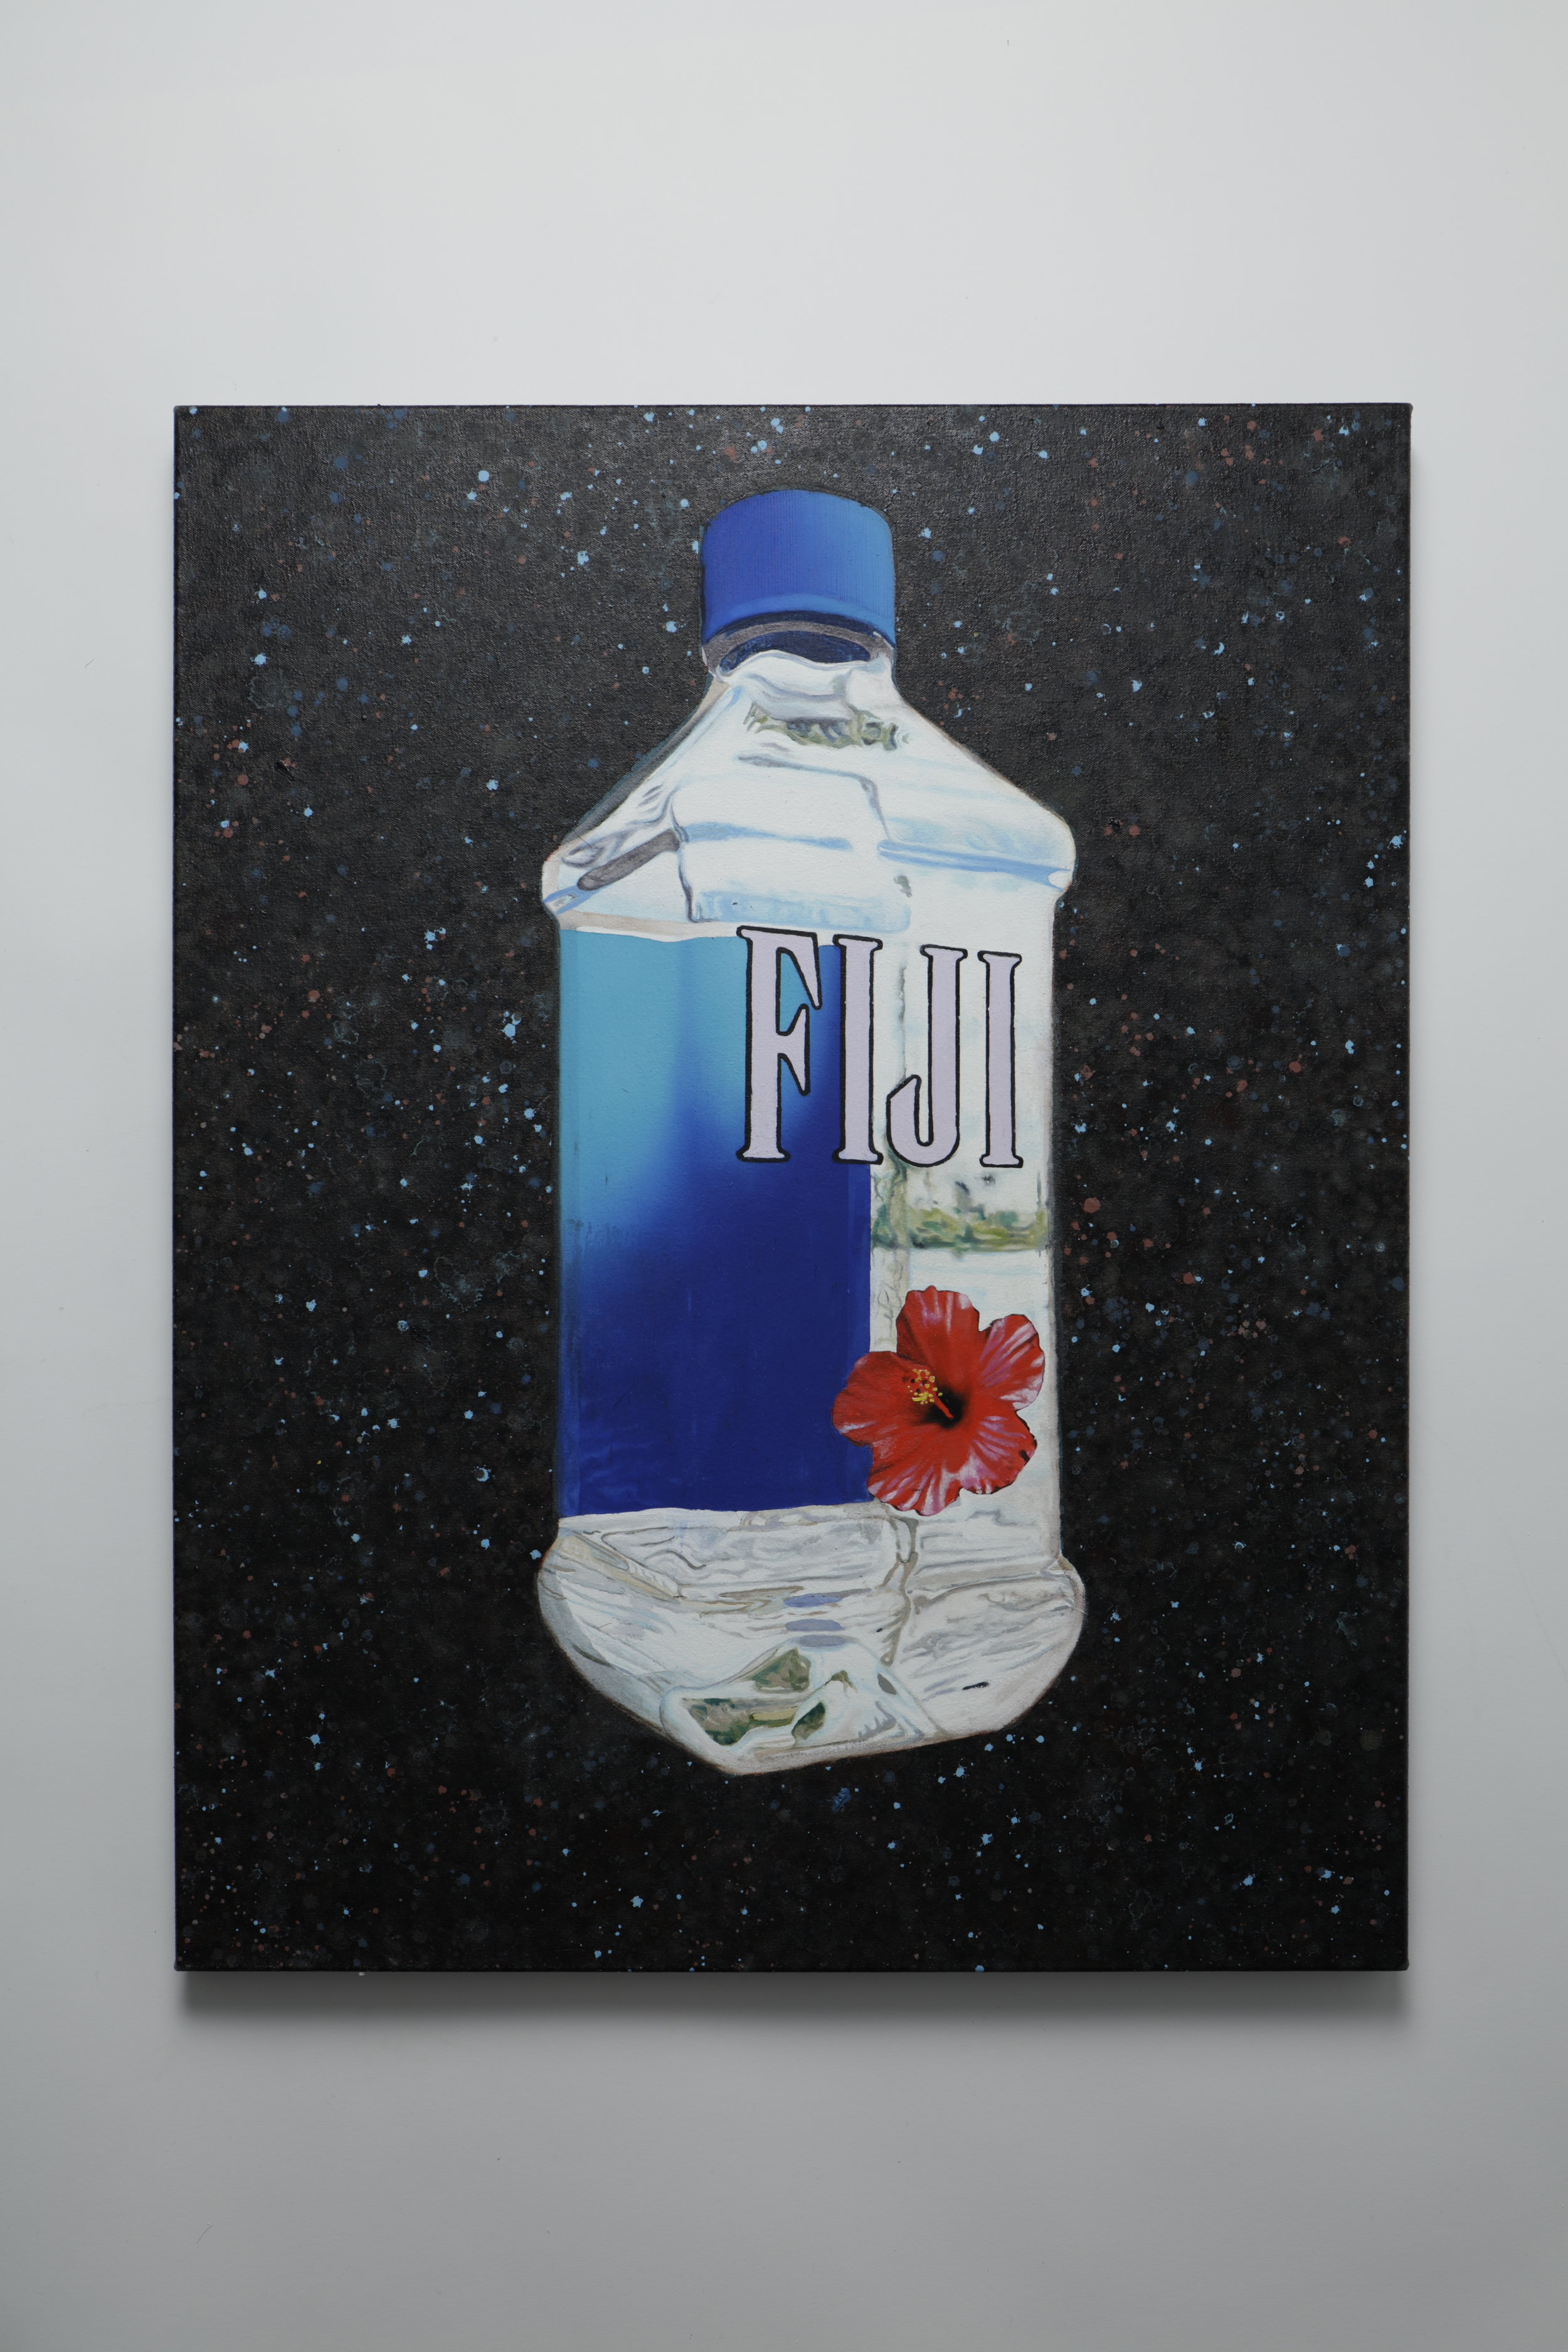 The worlds finest artisan water floating in space -  Oil on canvas - 55cm x 70cm - 2019